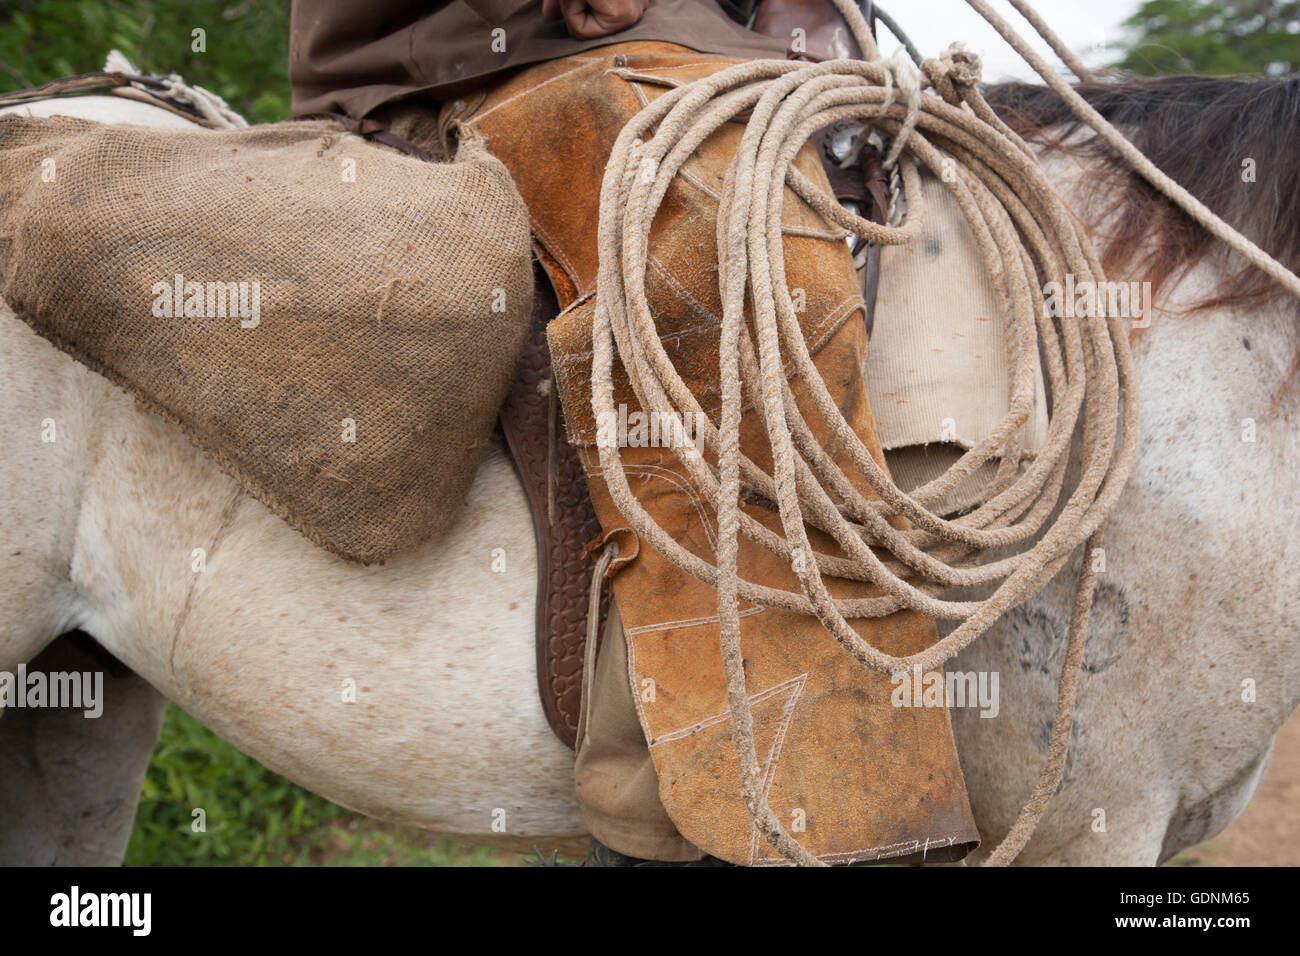 Cowboy with lasso rope on a horse in Cuba - Stock Image